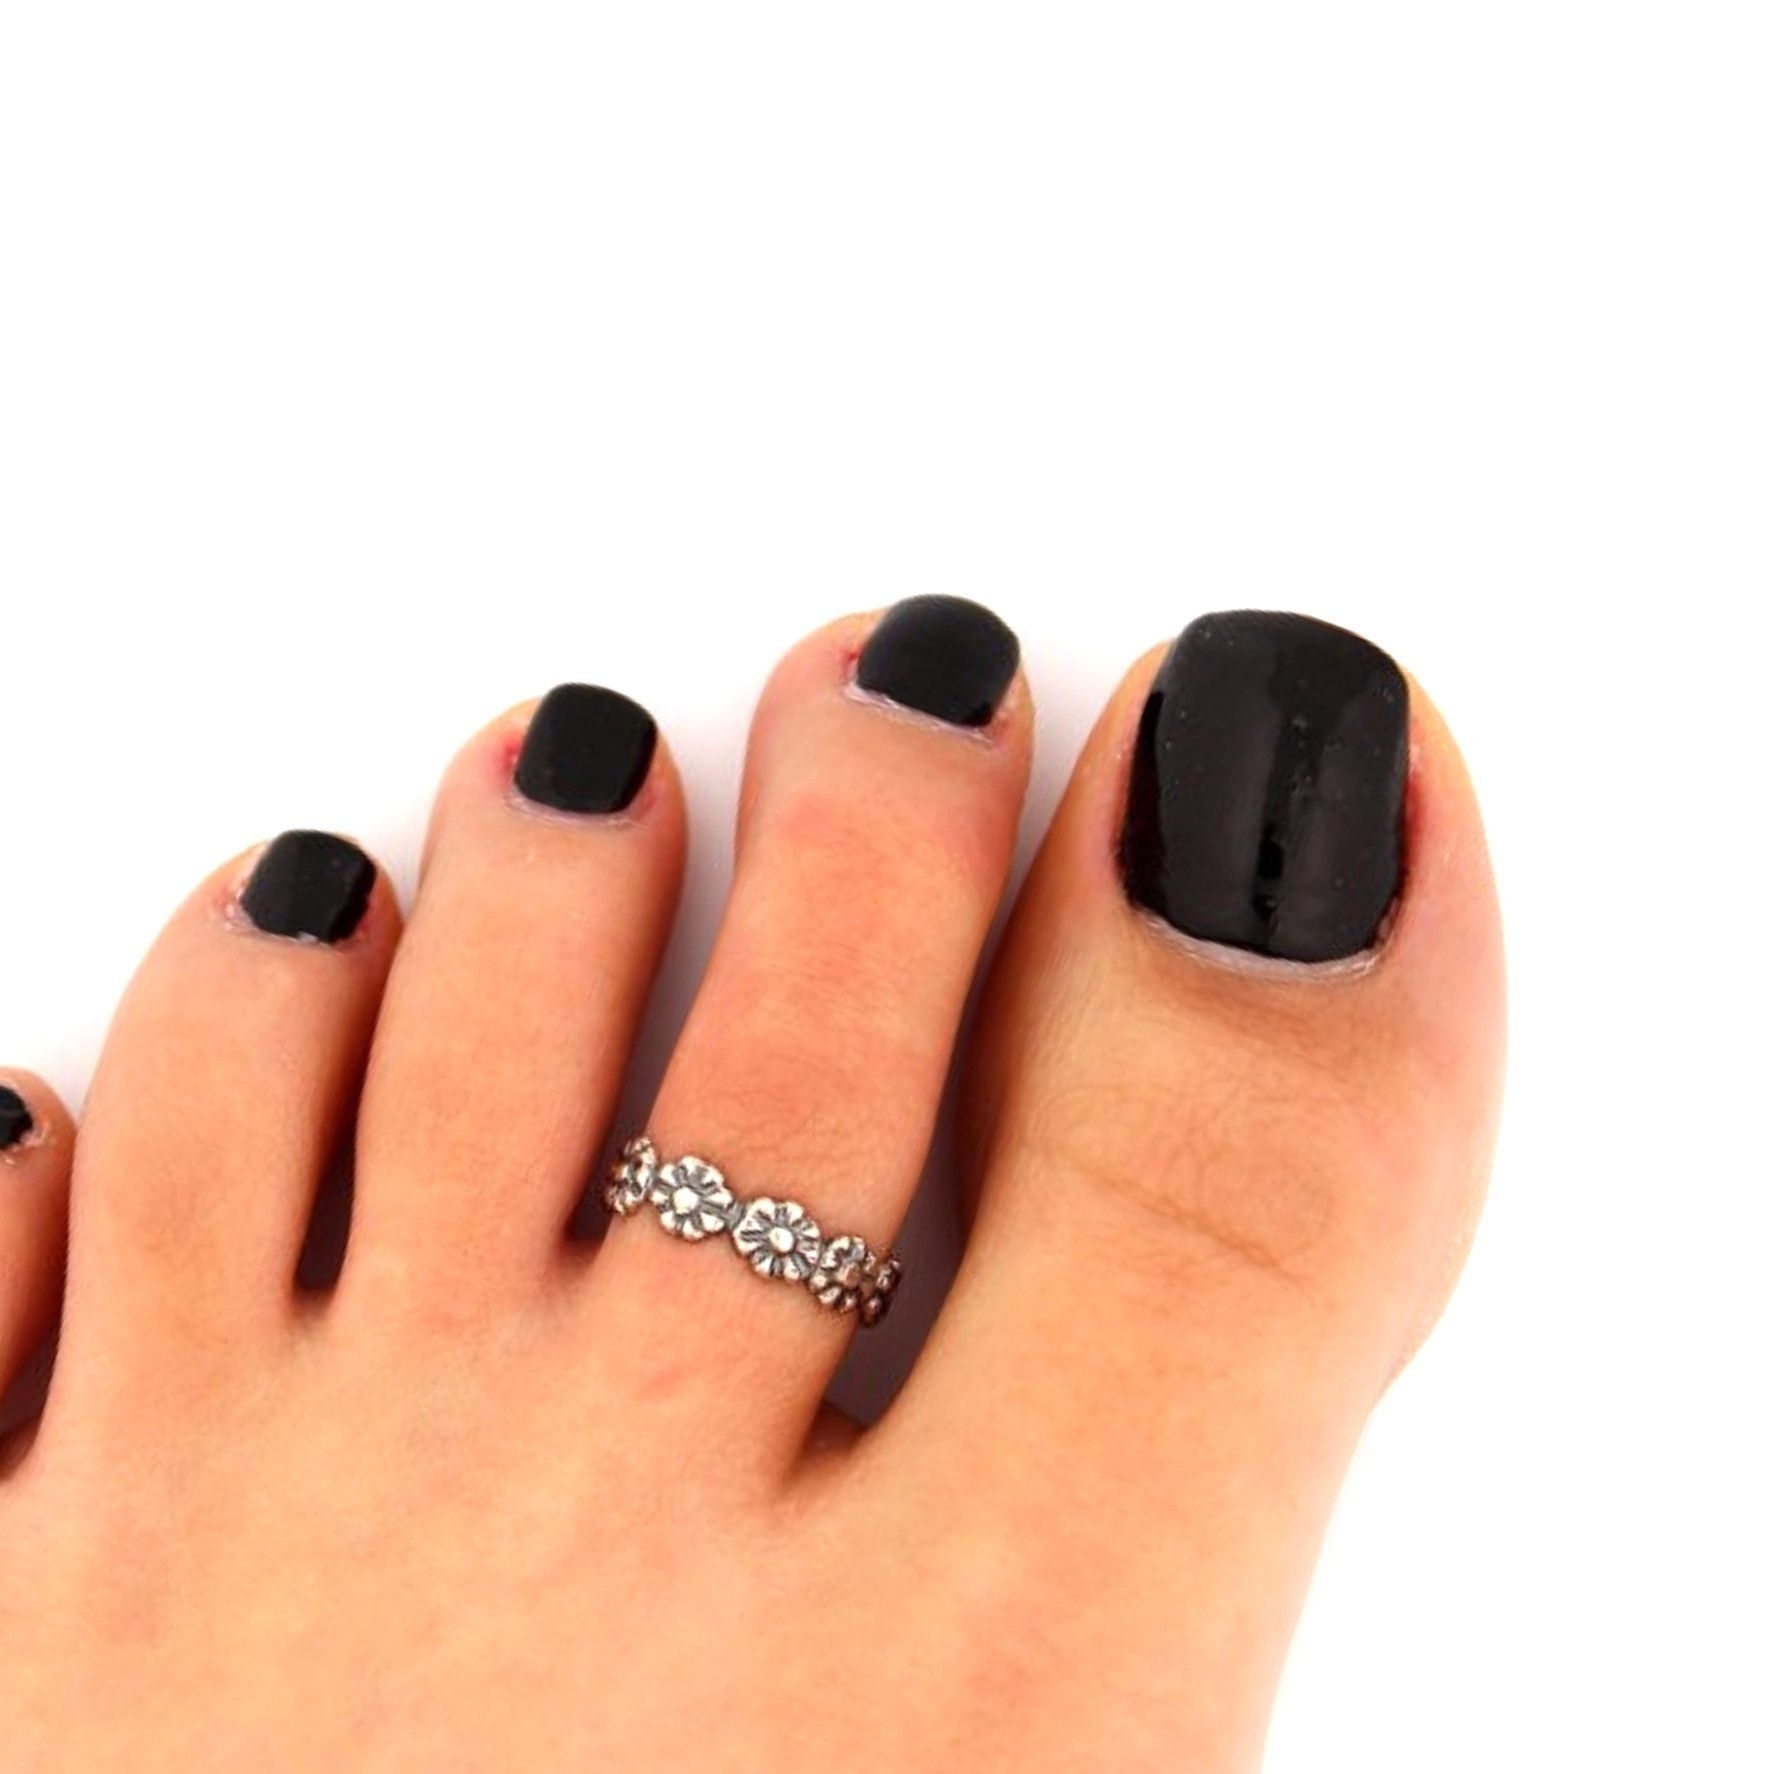 Shopping For Toe Rings That Are Simple Yet Chic? This Silver Toe Intended For Newest Non Adjustable Toe Rings (View 8 of 15)